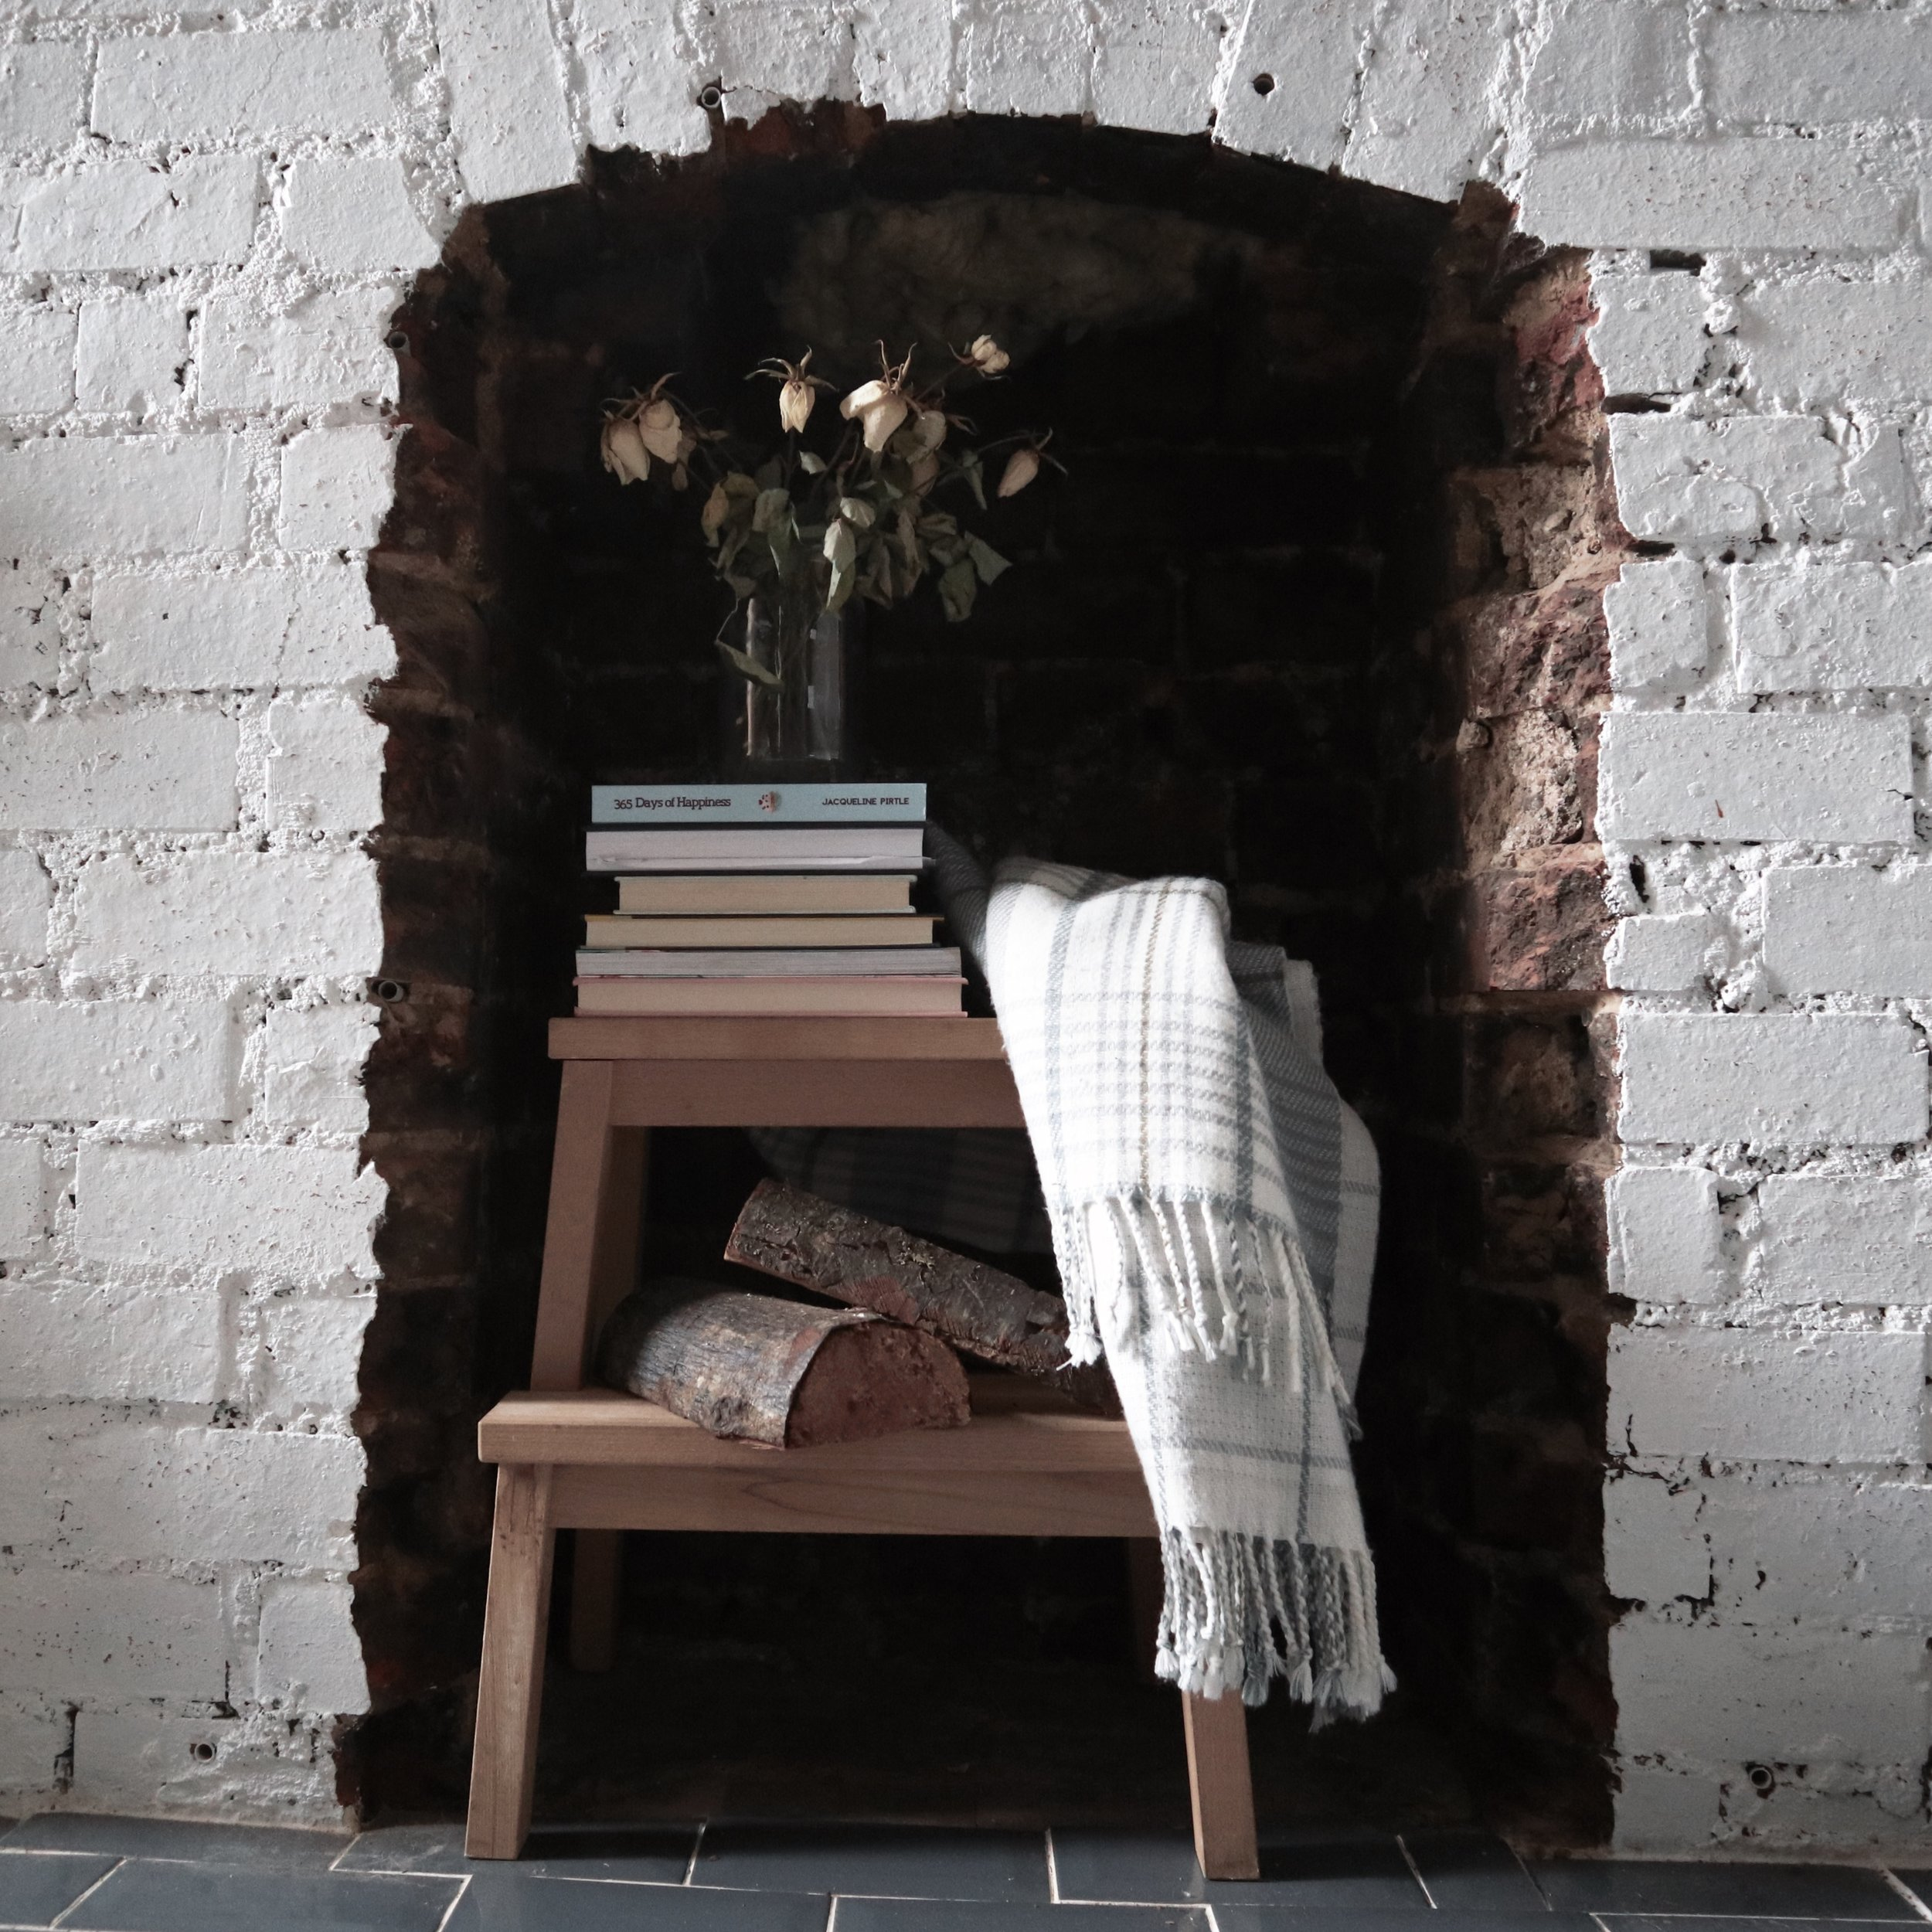 Books on stool in fireplace with rug